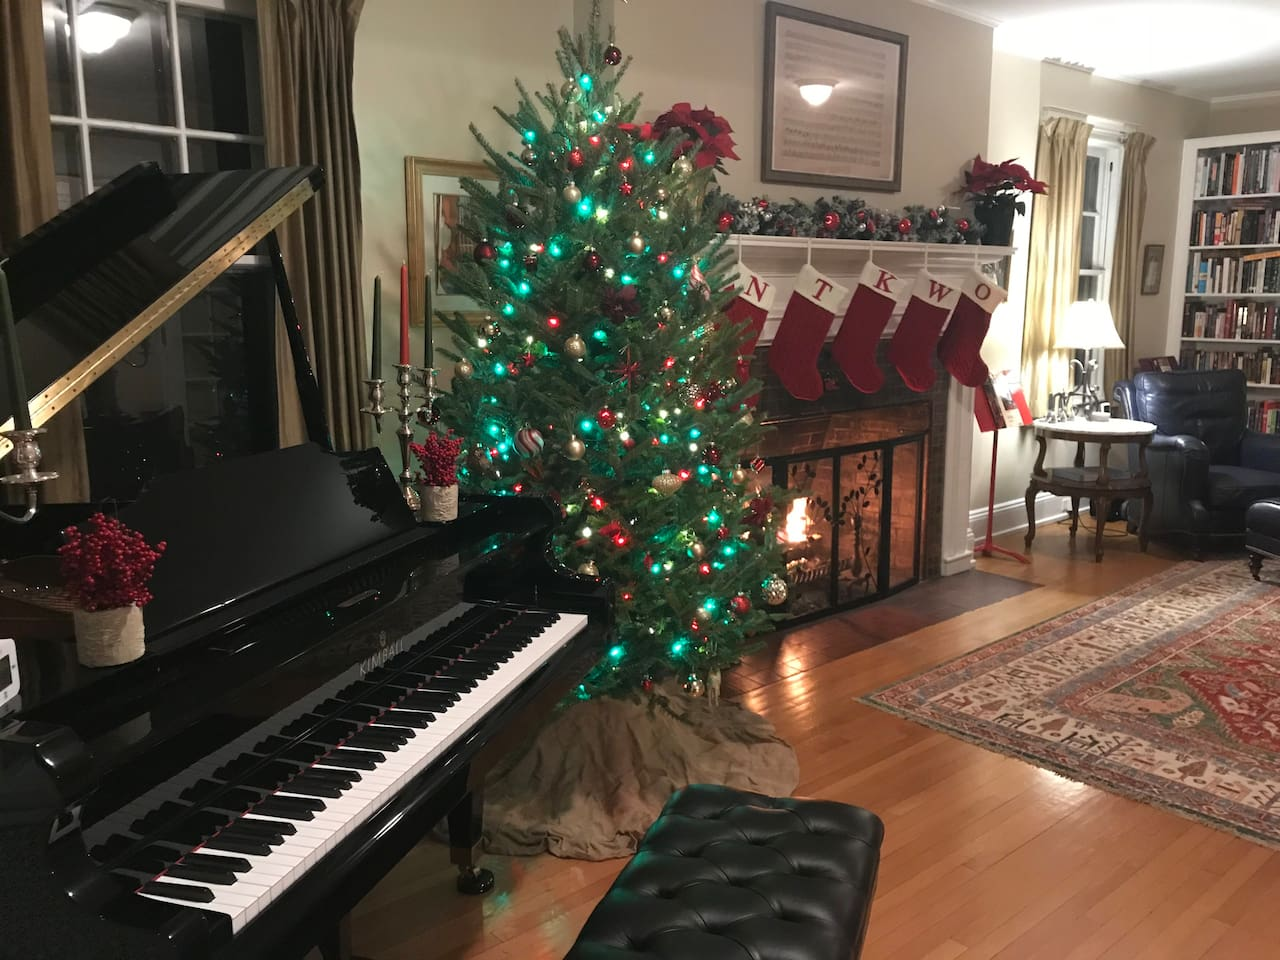 """The living room/music room (a shared space) decorated for Christmas in """"Christmas City USA"""" (Bethlehem, PA)."""